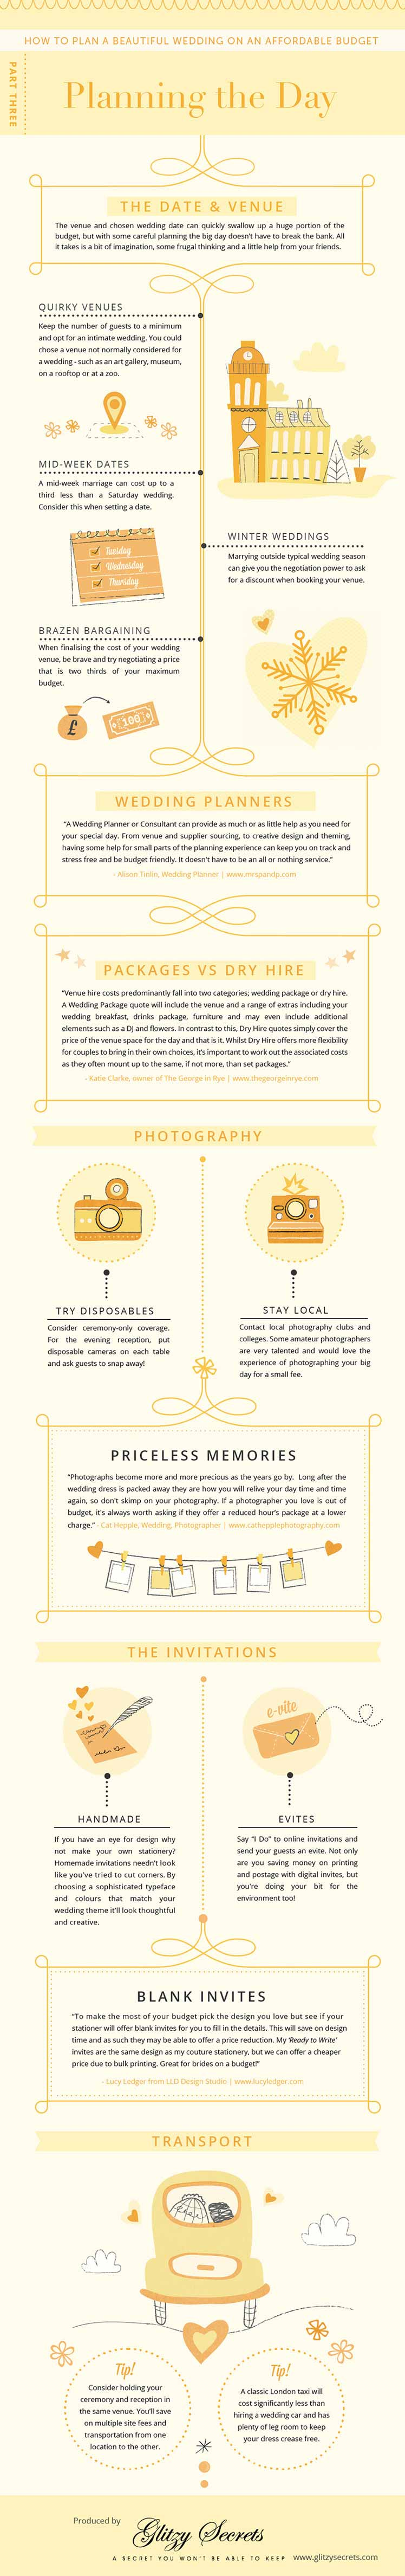 Wedding infographic for organising your big day